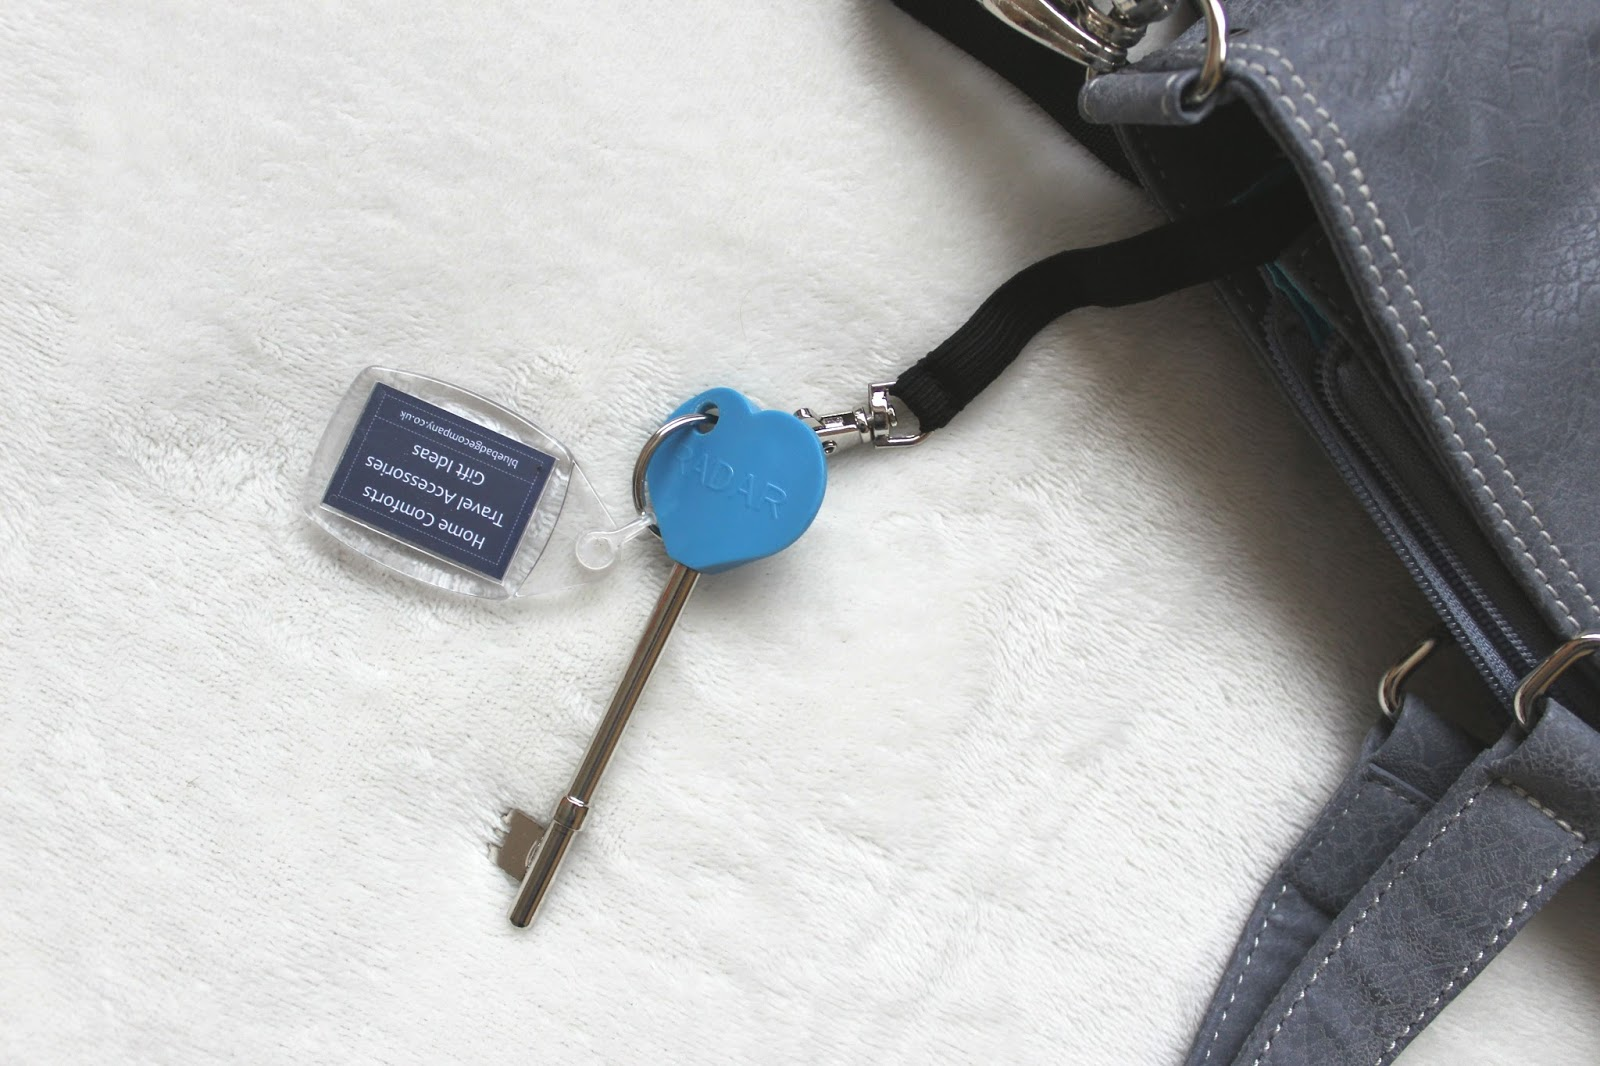 A blue key and keyring are attached to a keys clip which is hanging out of a large grey handbag.